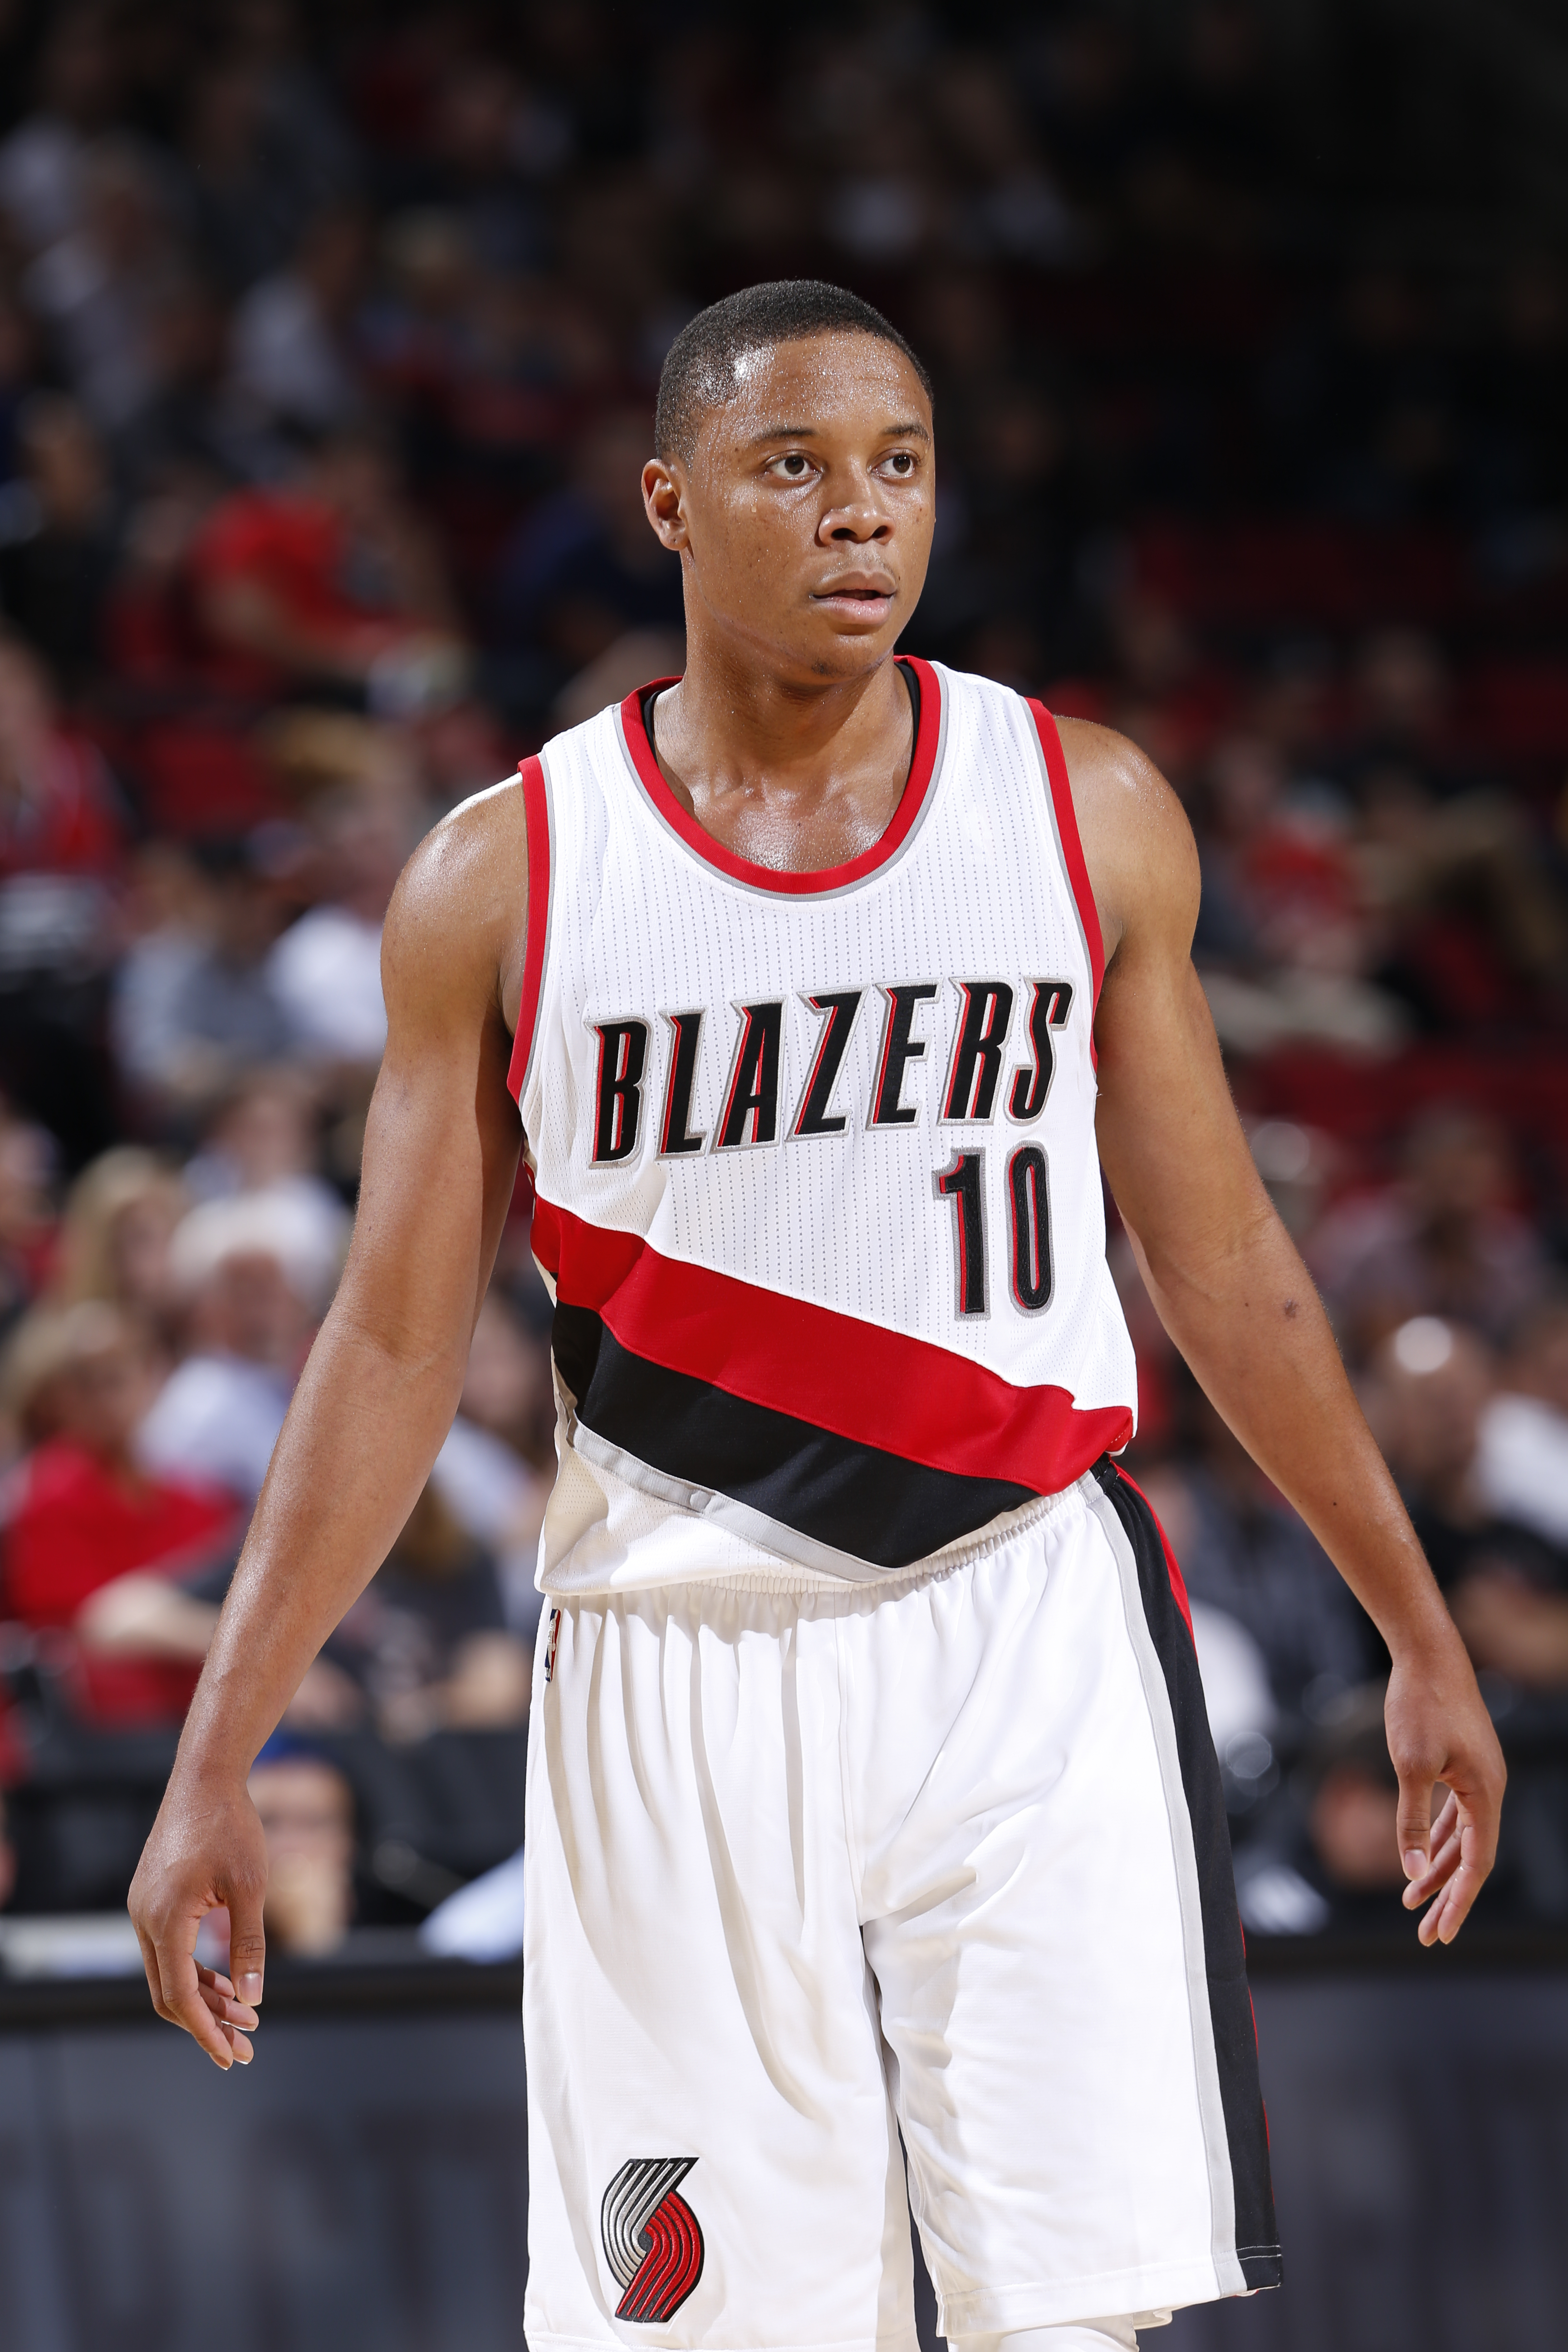 PORTLAND, OR - OCTOBER 5: Tim Frazier #10 of the Portland Trail Blazers during the preseason game against the Sacramento Kings on October 5, 2015 at the Moda Center Arena in Portland, Oregon. (Photo by Sam Forencich/NBAE via Getty Images)